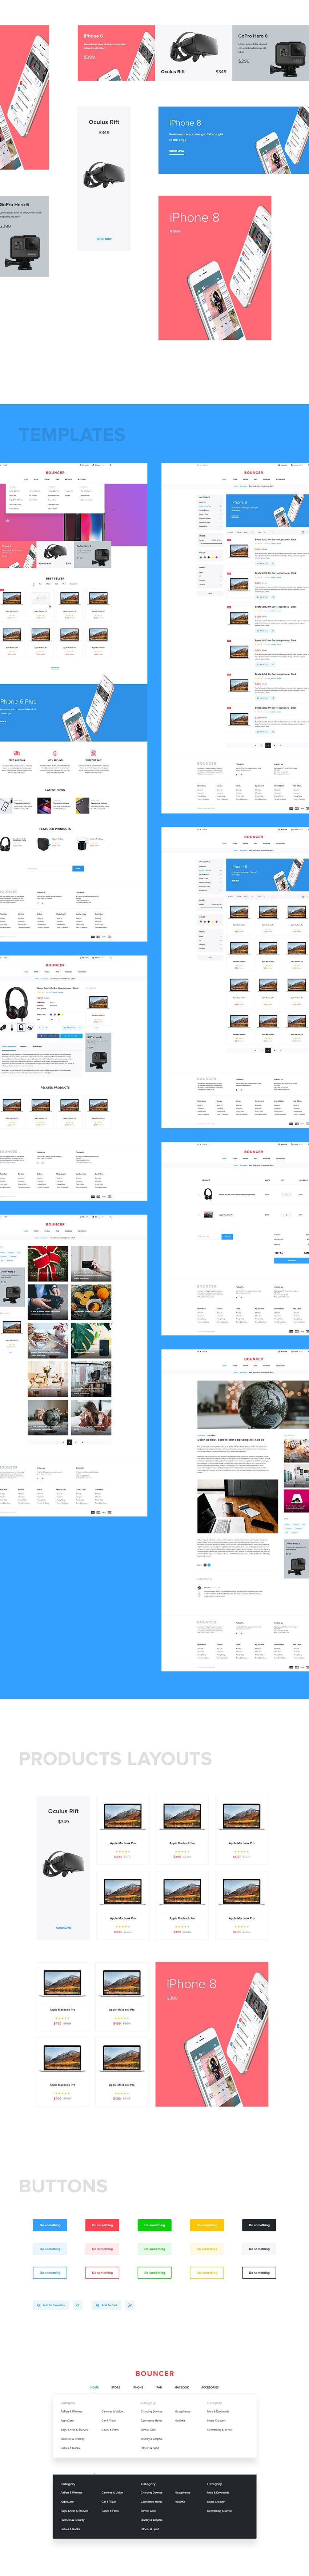 eCommerce Store UI design free - Xd template